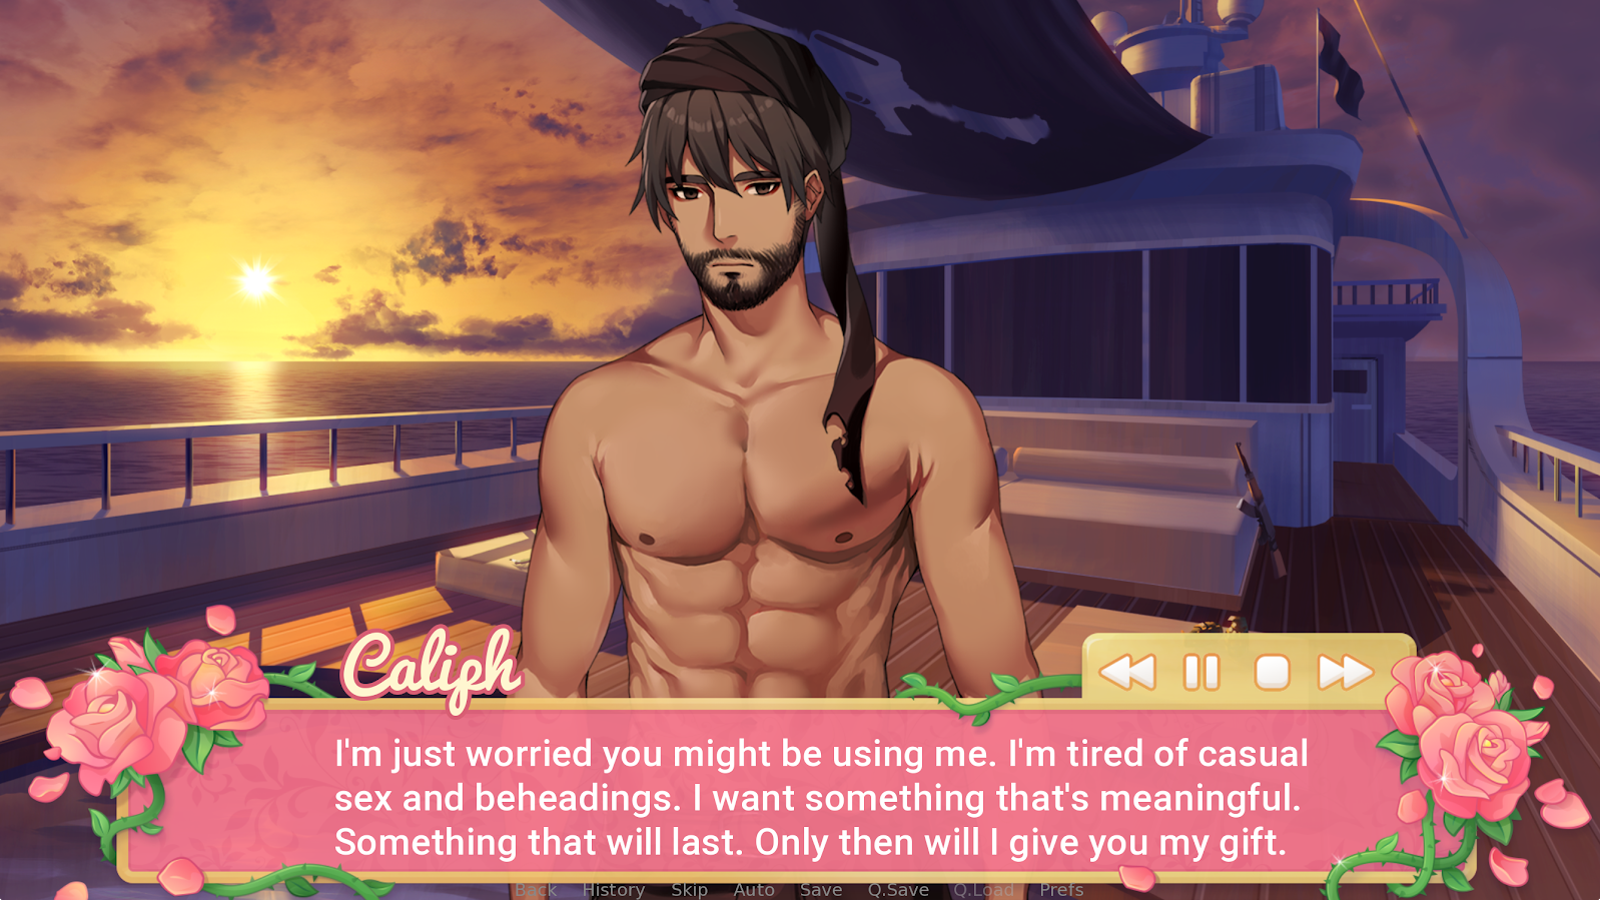 Beach sex with captions